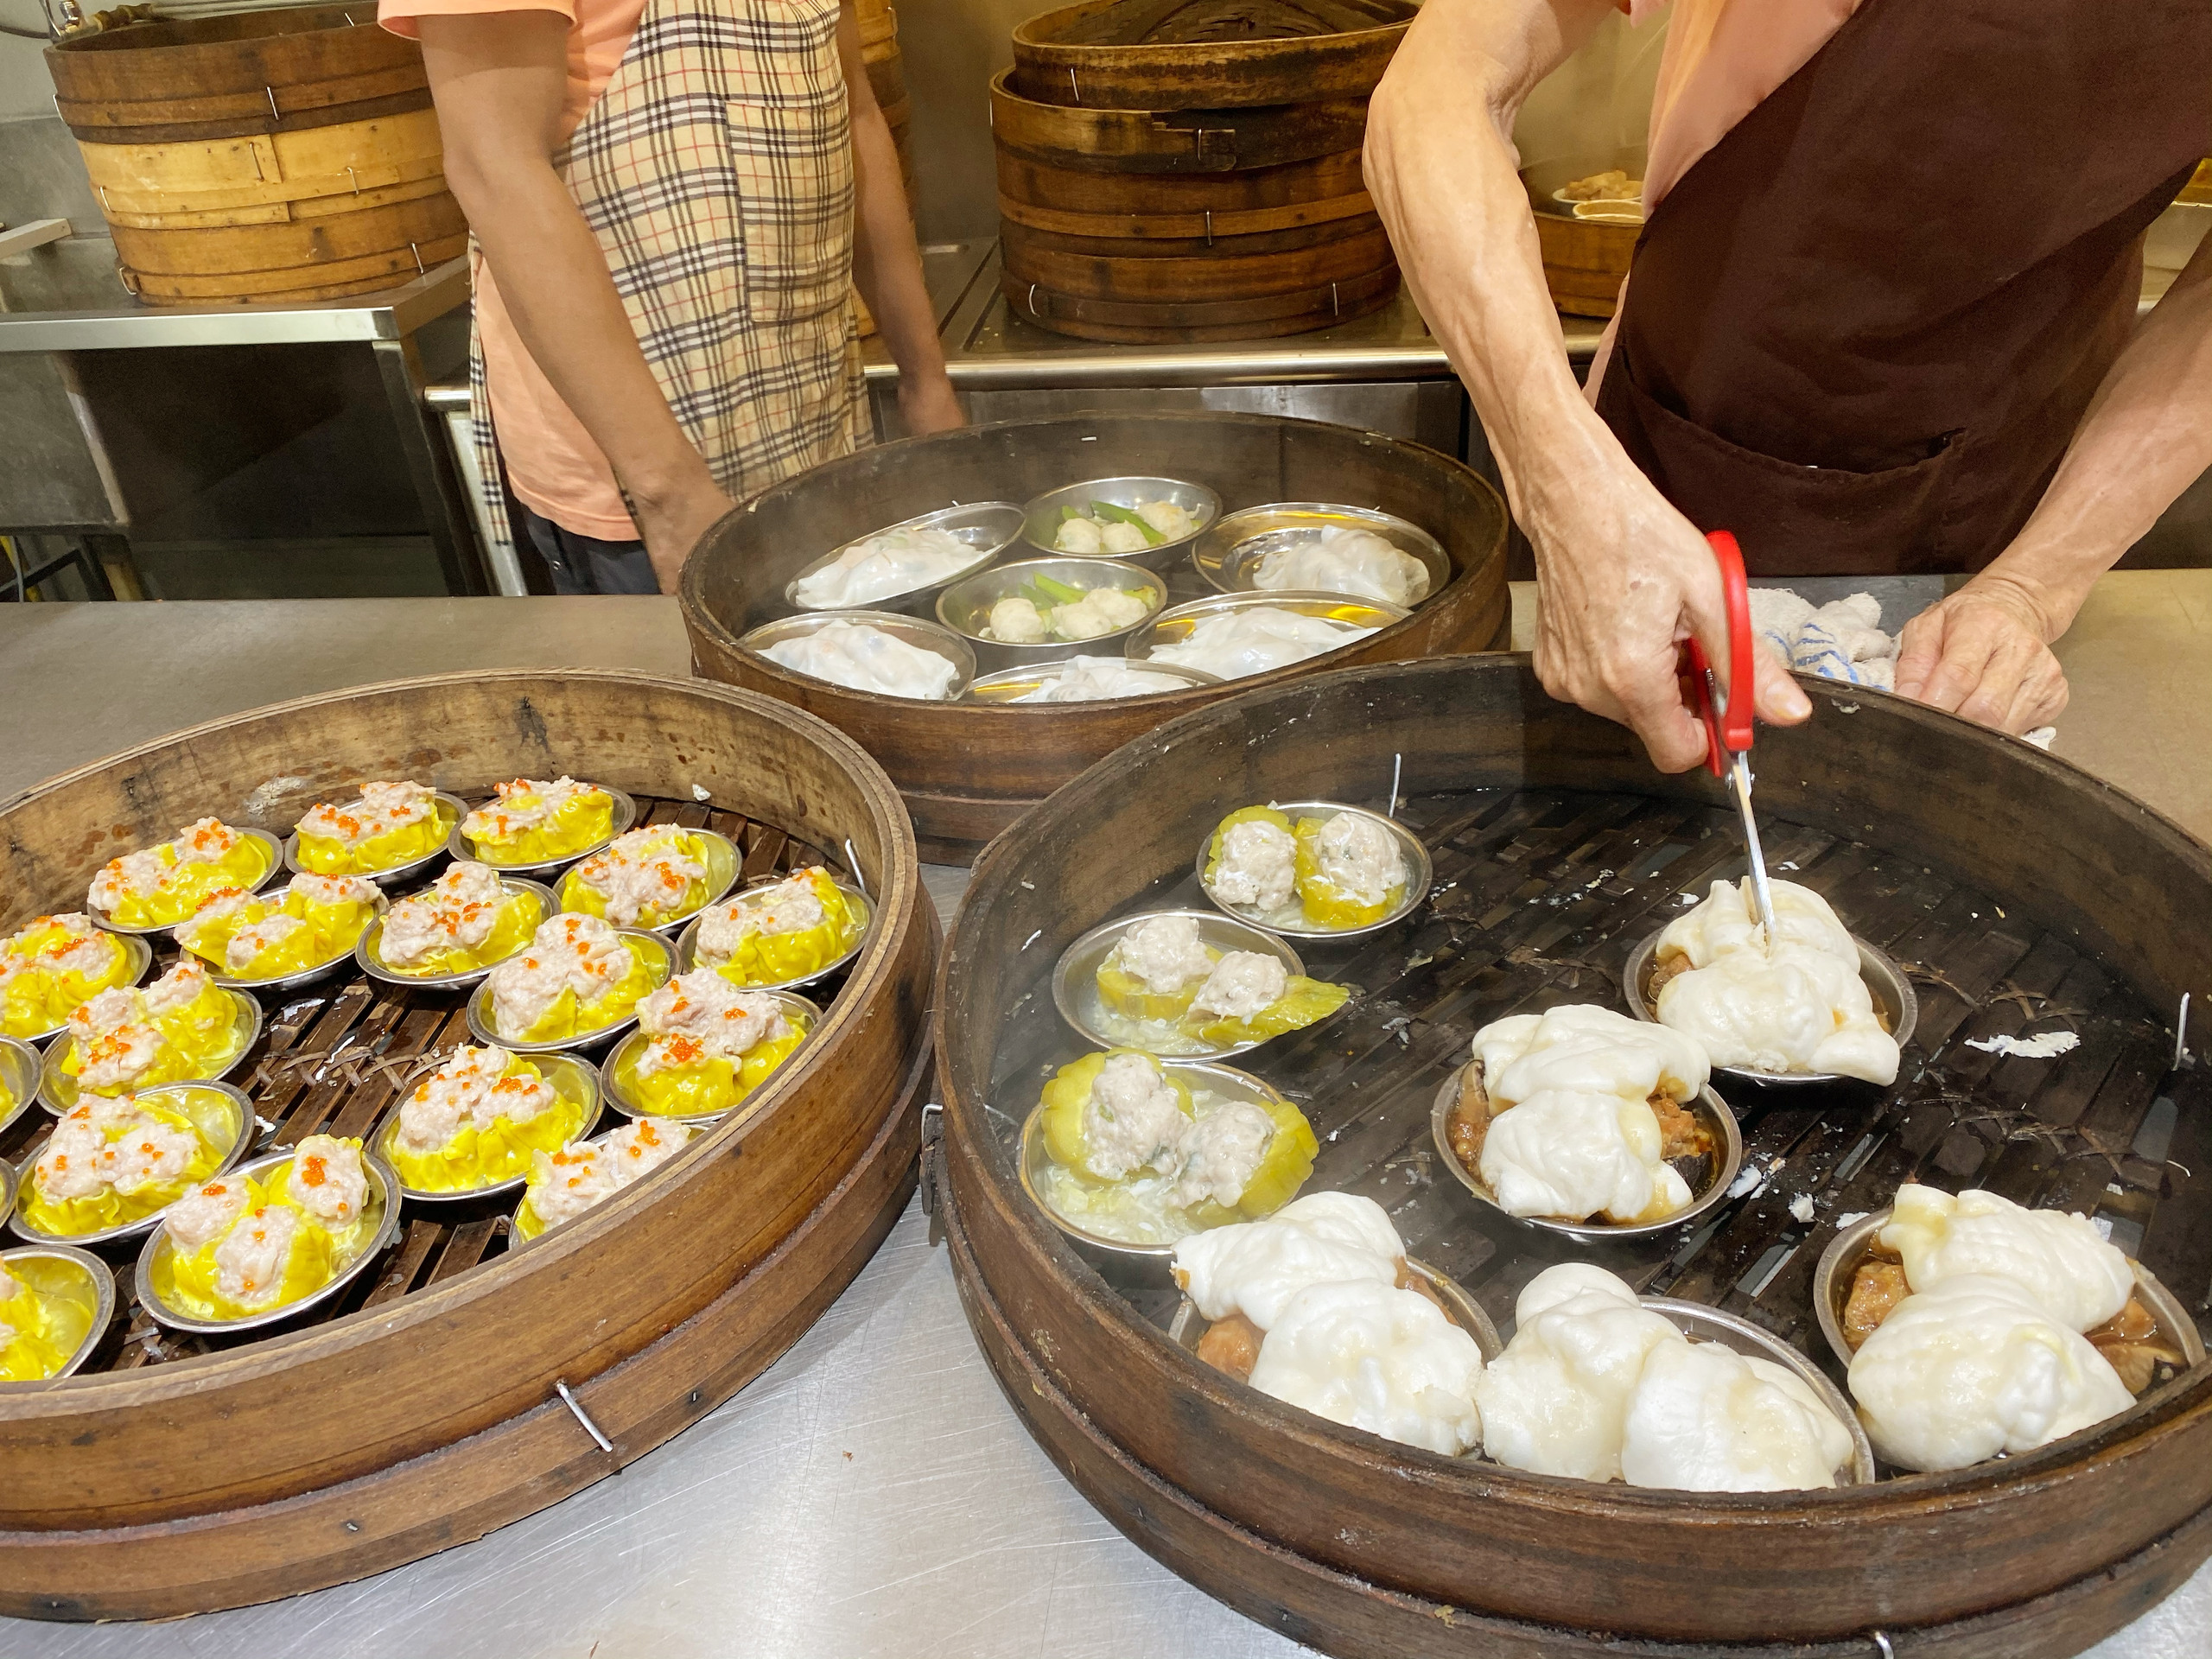 Large bamboo steamers filled with dim sum foods including pork shu mai, dumplings, and steamed bao